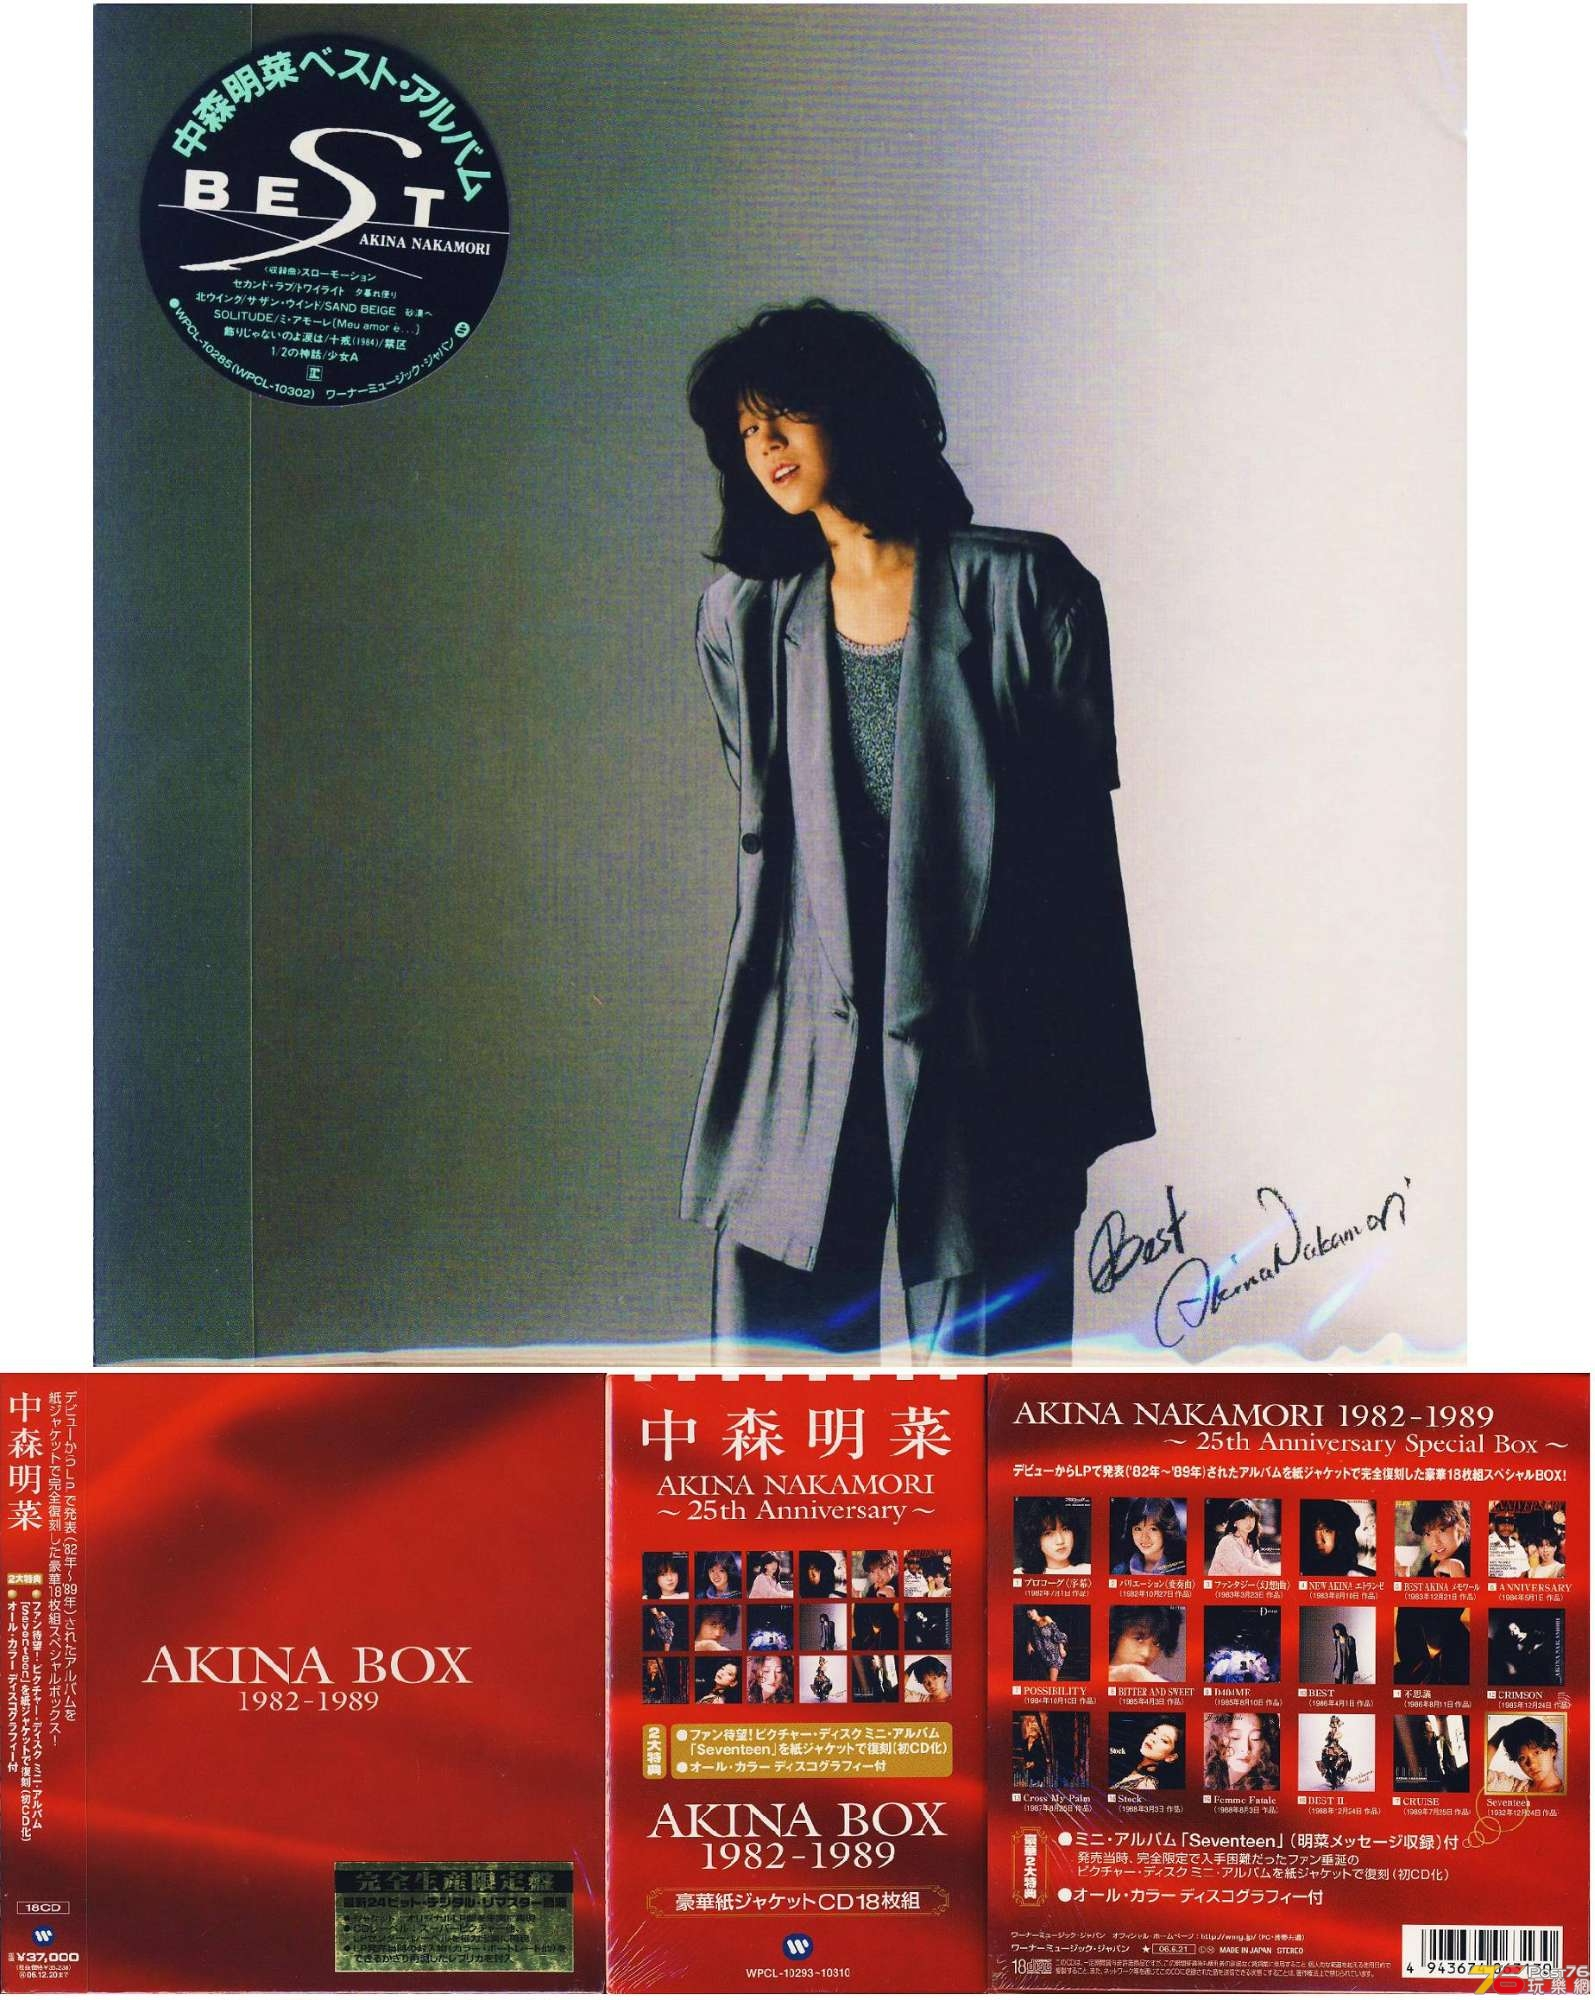 (1986.04.01 B2)BEST [2006.06.21 AKINA BOX 1982-1989 - Disc.jpg